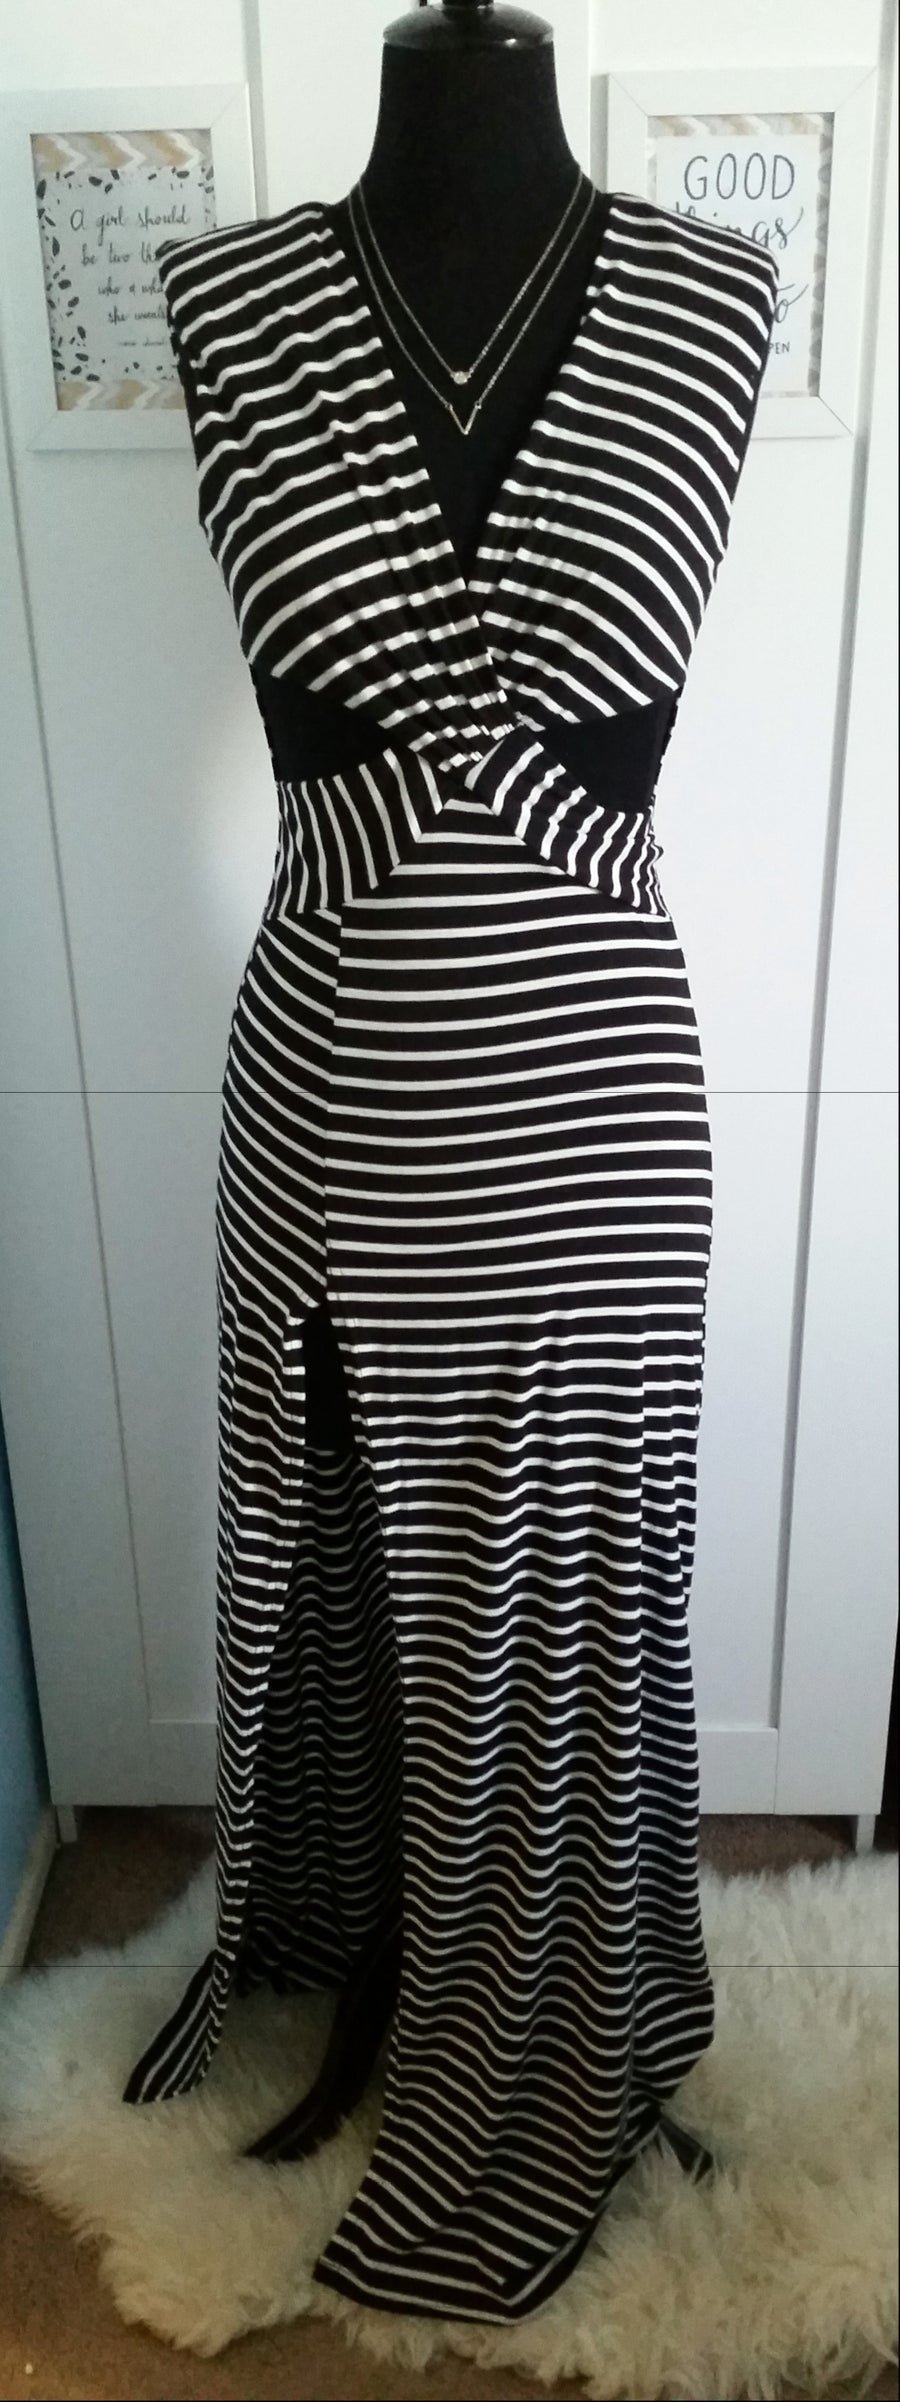 Image of (S)Black/White stripe cut out & high split dress